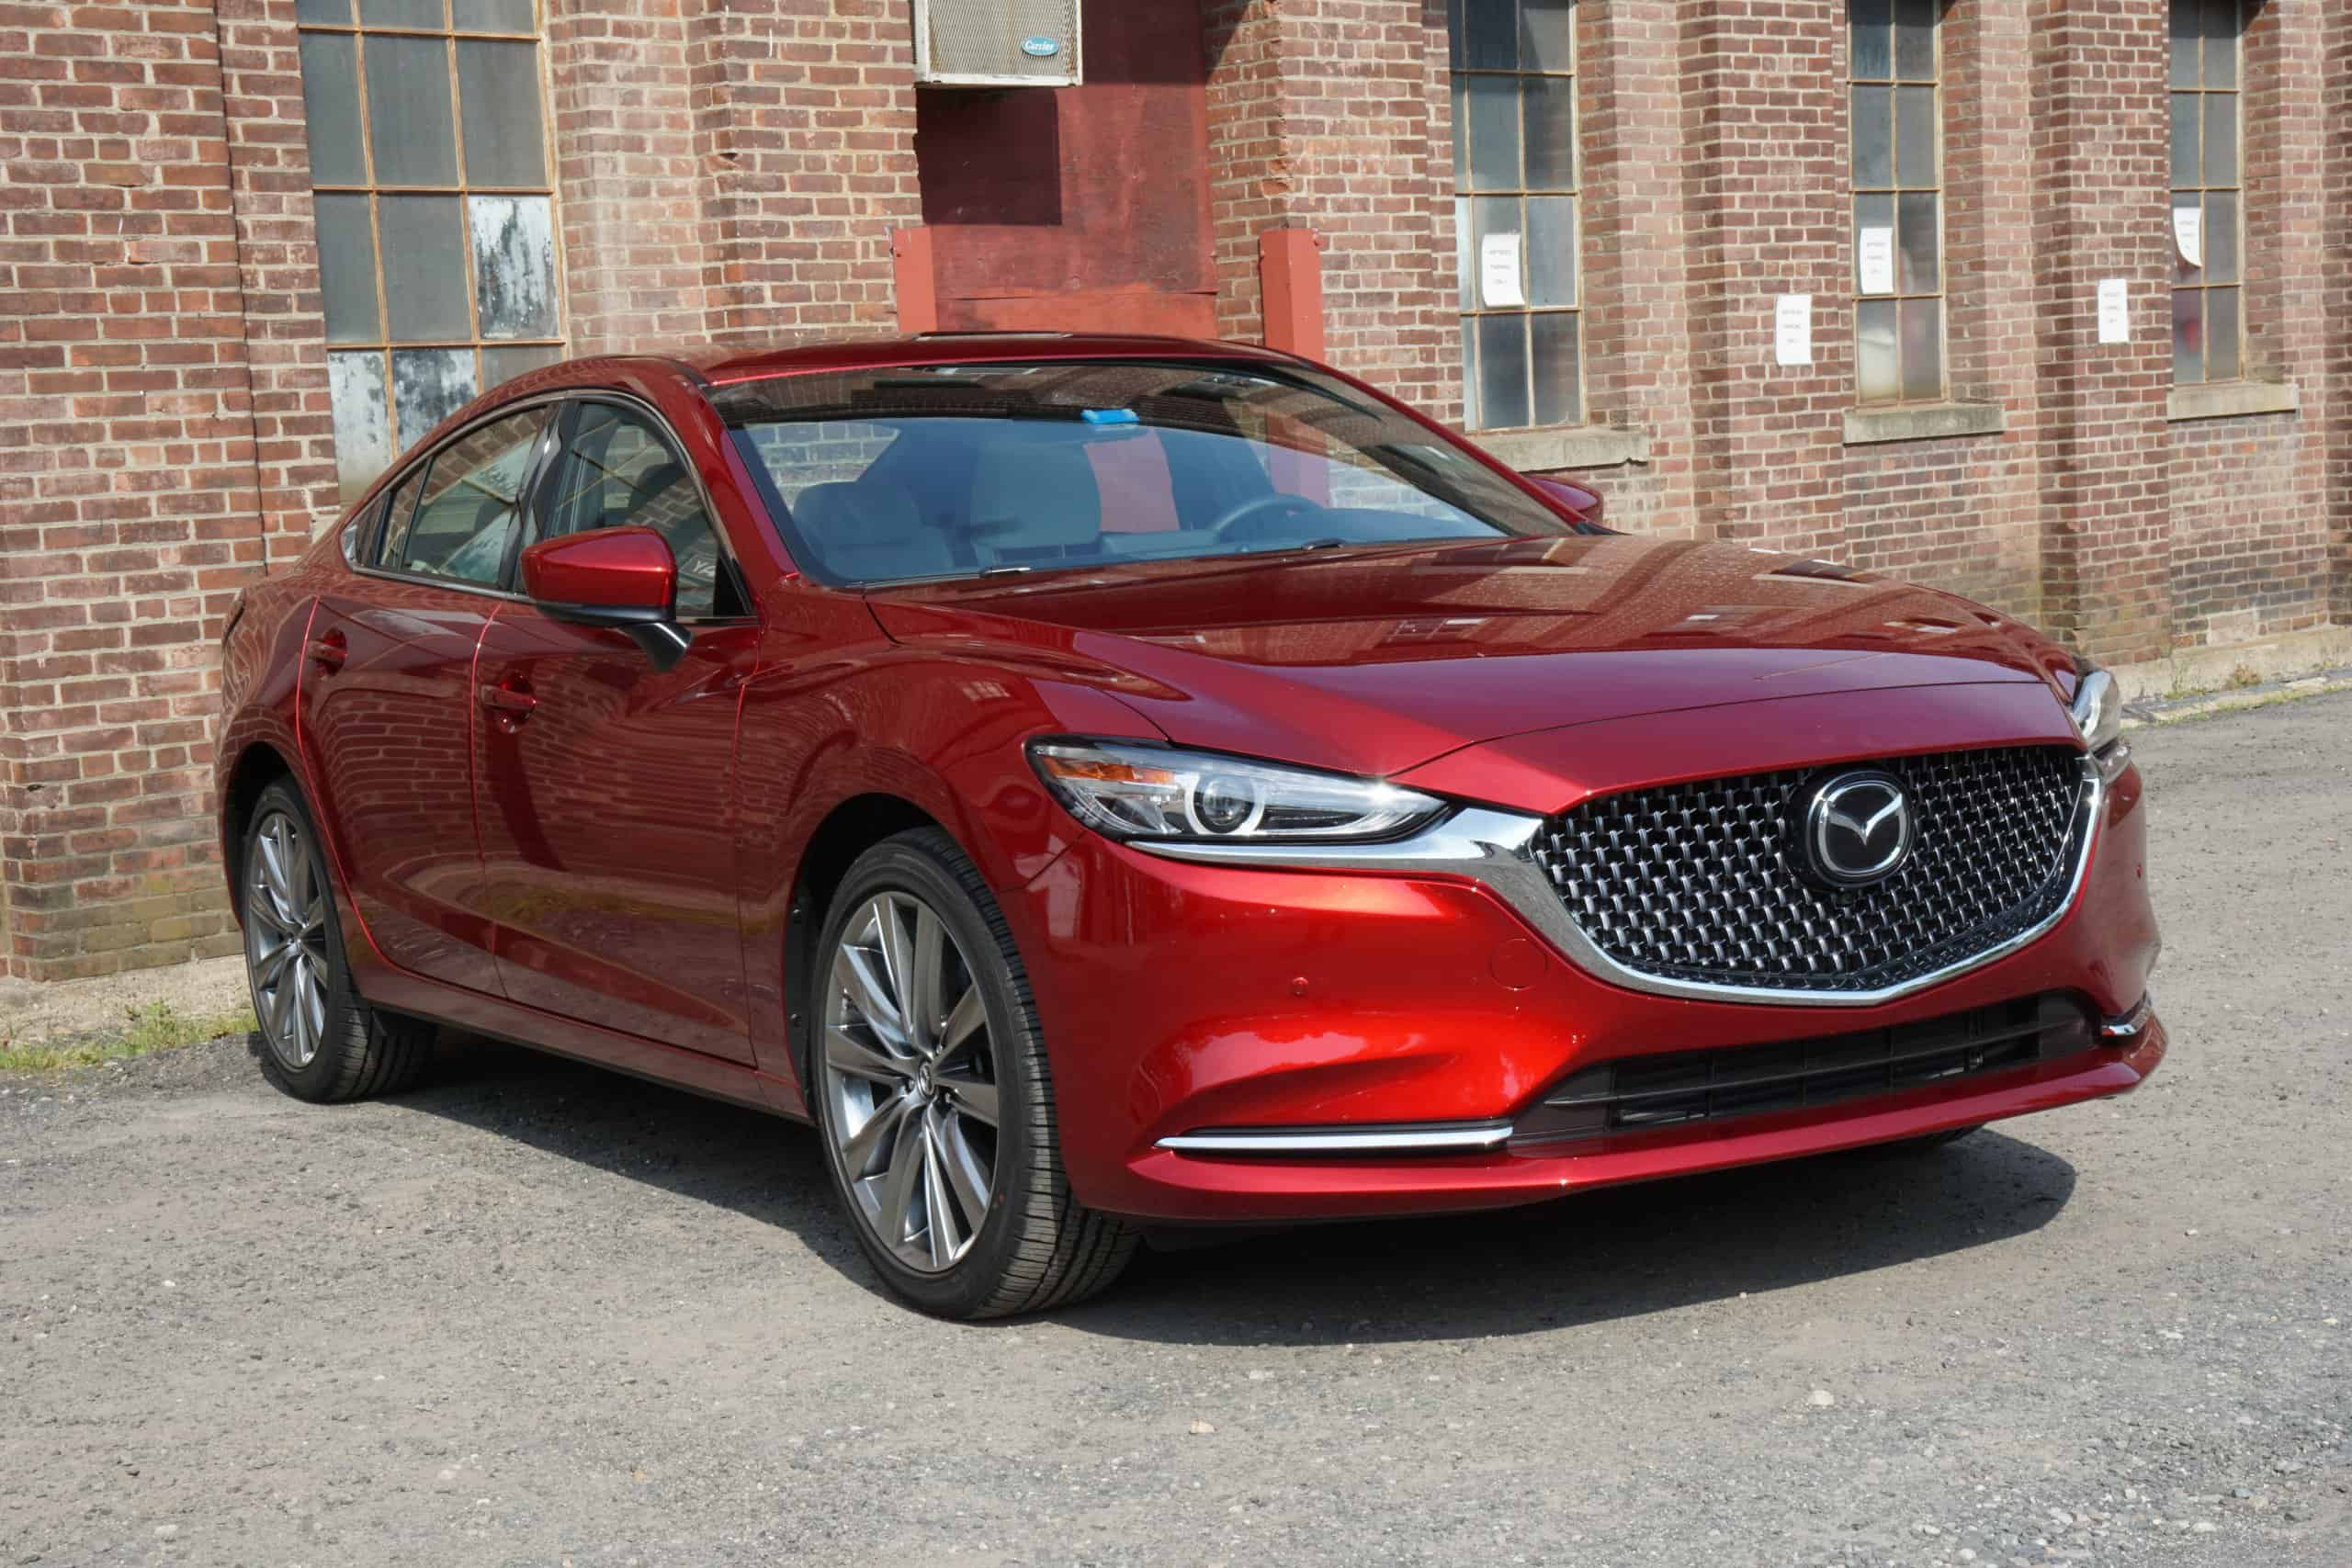 Driven 2020 Mazda 6 Is A Roomy And Sporty Sedan